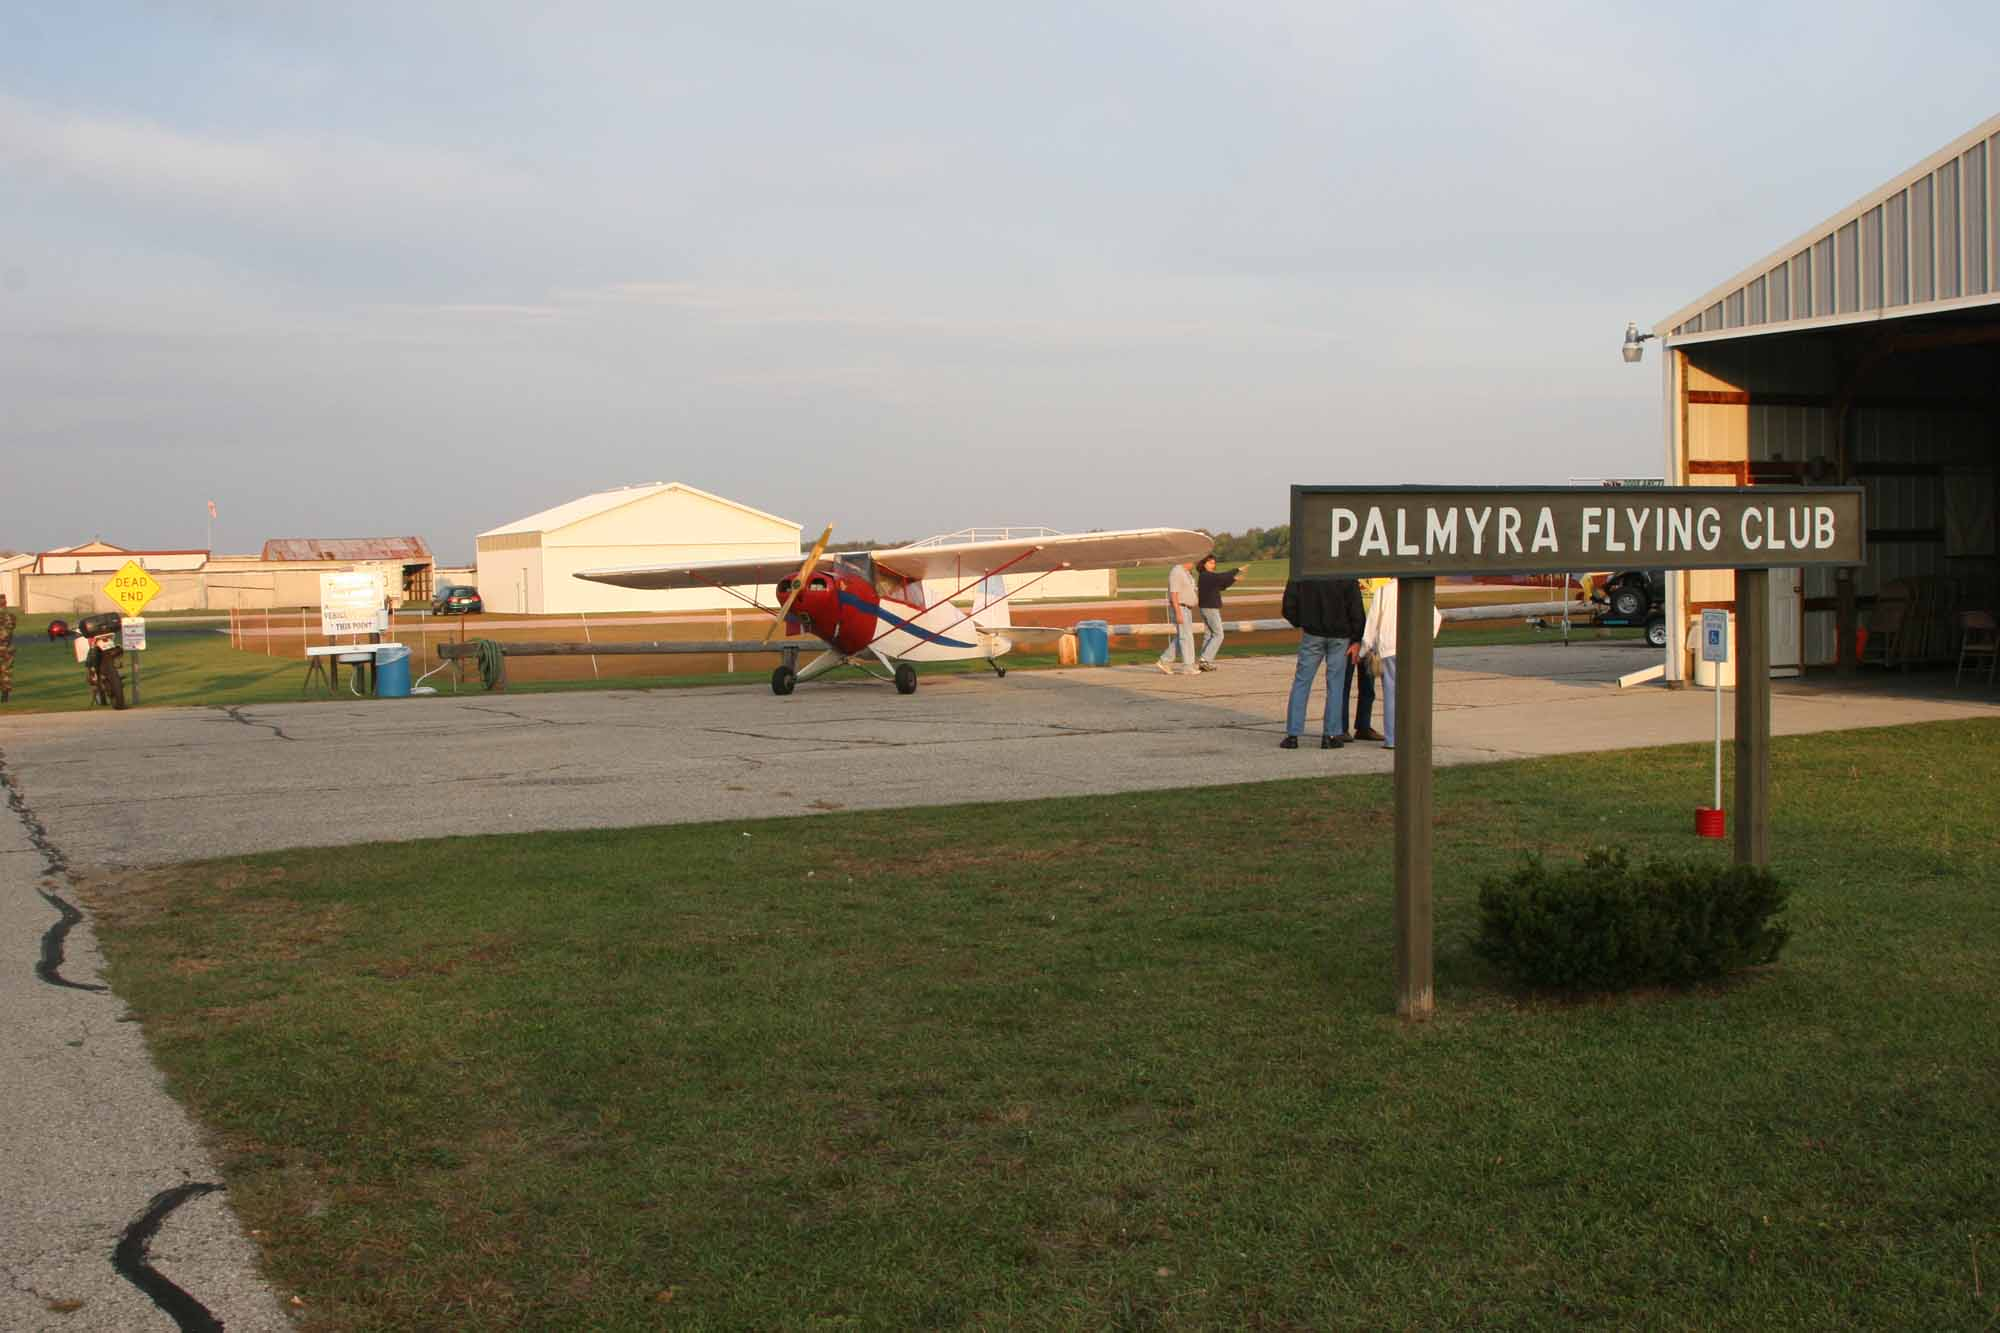 Palmyra Flying Club